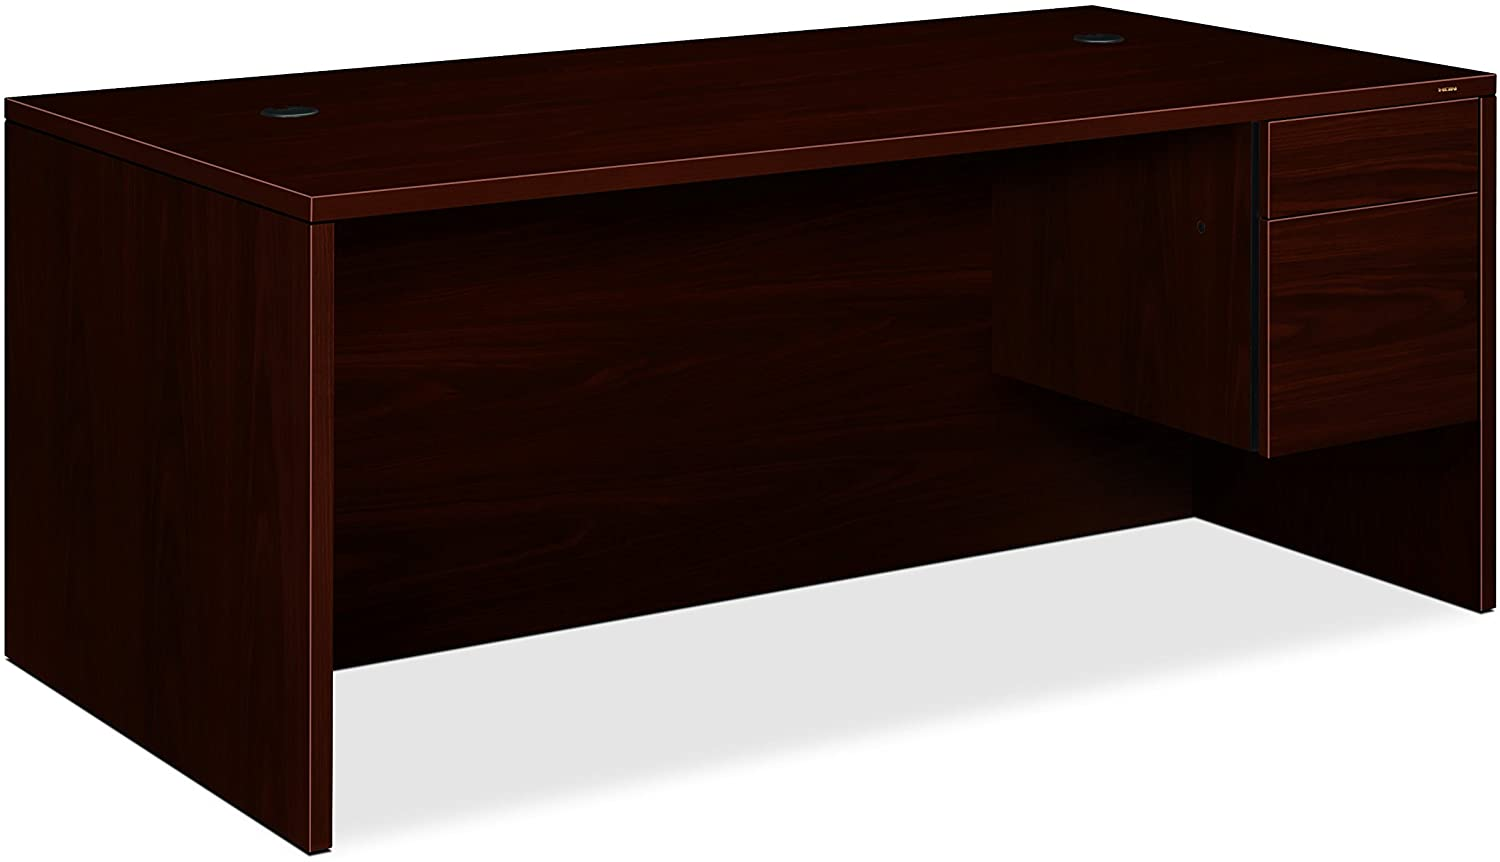 HON 10583RNN 10500 Series 66 by 30 by 29-1/2-Inch Right Pedestal Desk, Mahogany